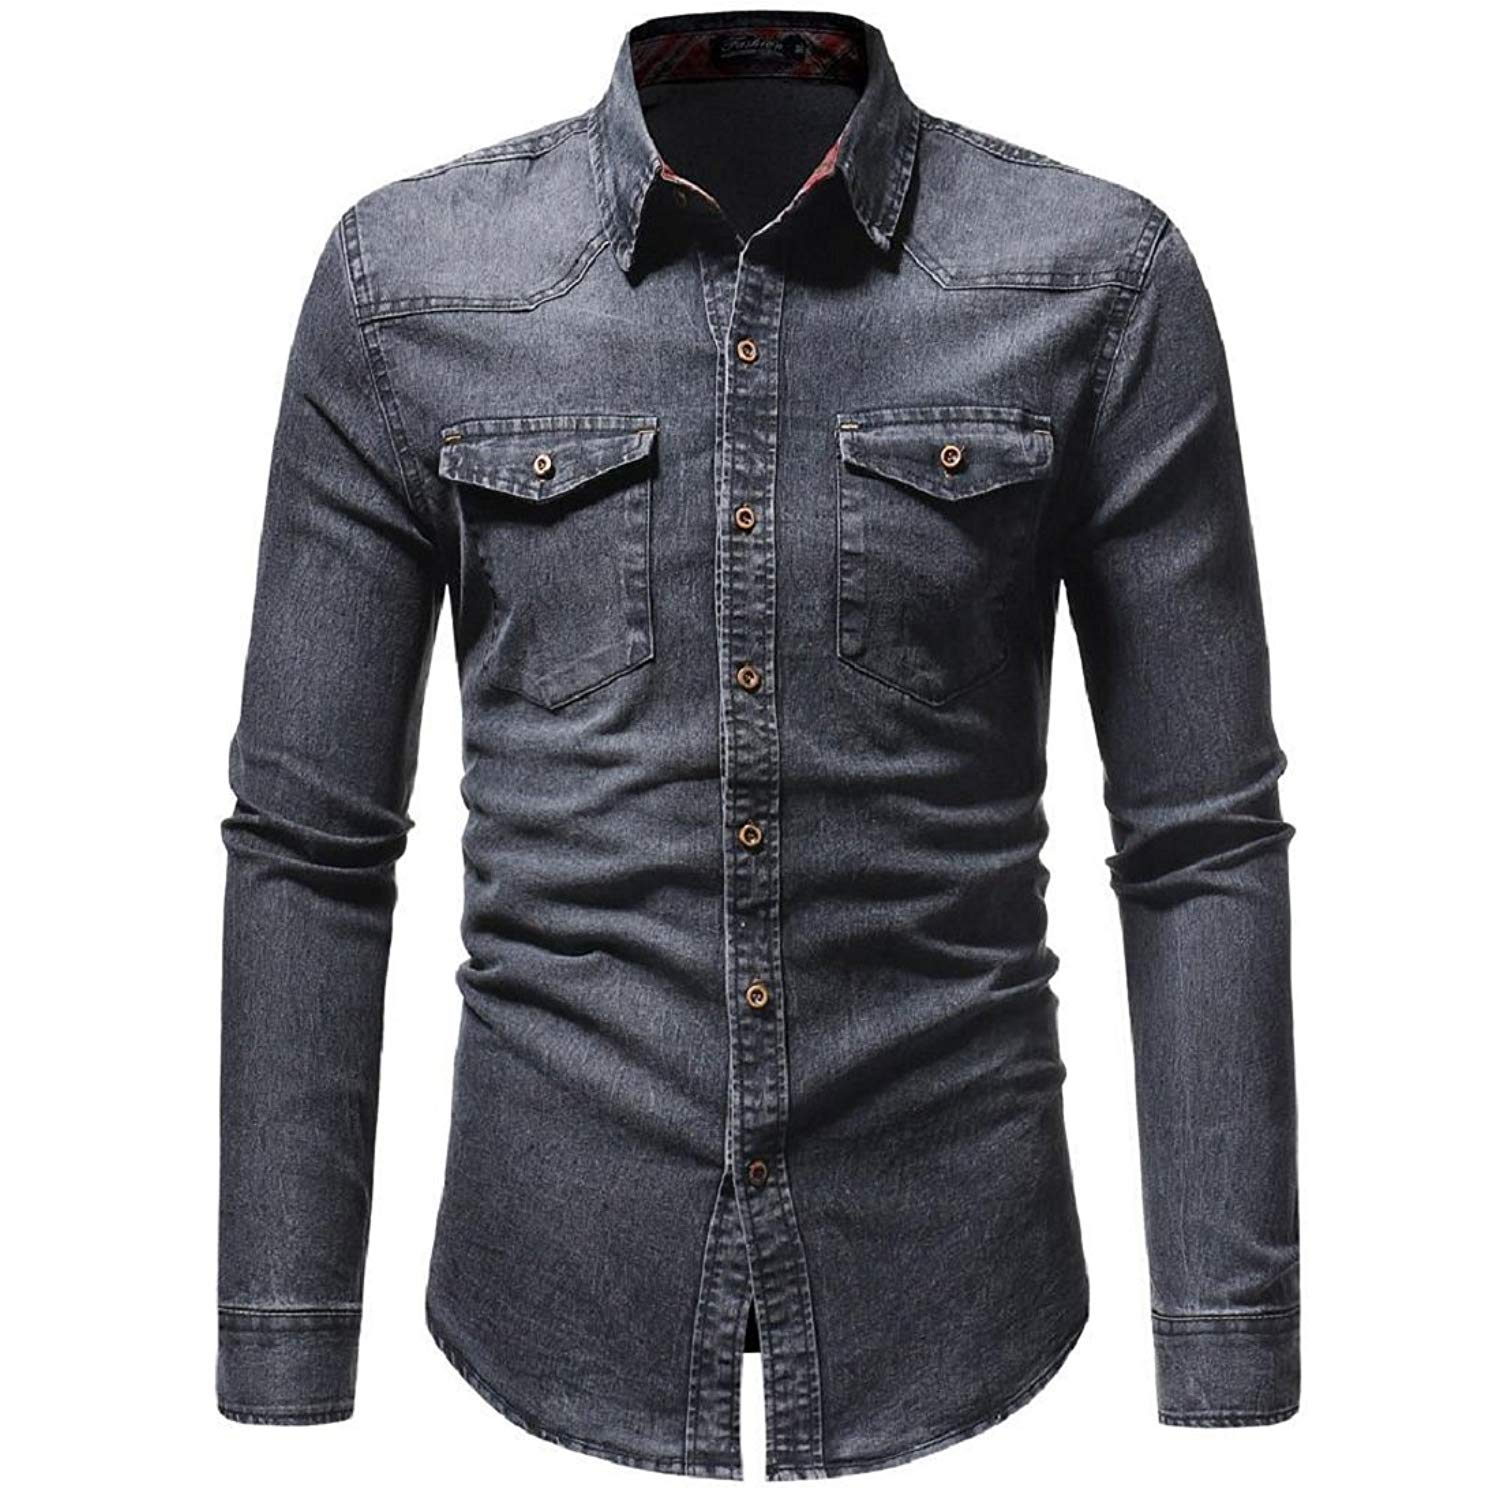 b46bf9ba4 Get Quotations · GONKOMA Mens Shirts Men s Casual Long Sleeve Denim Shirt  Autumn Winter Vintage Slim Solid Top Shirt